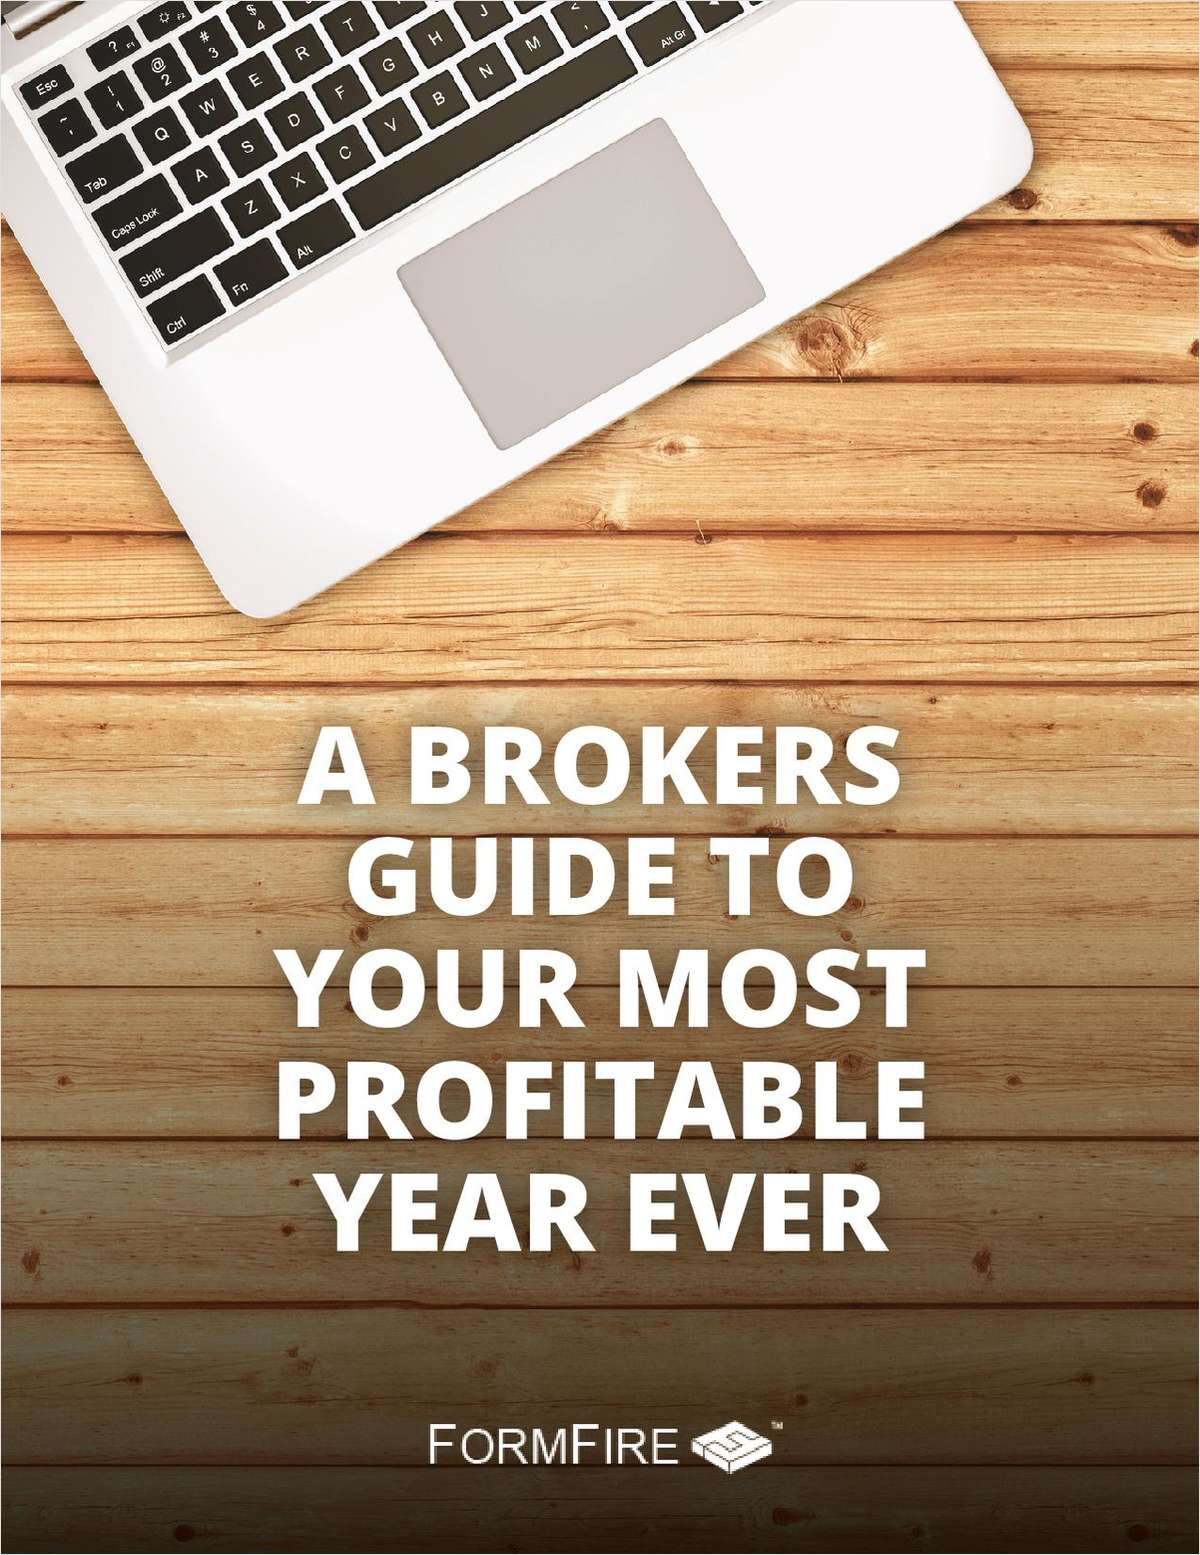 A Broker's Guide to Your Most Profitable Year Ever